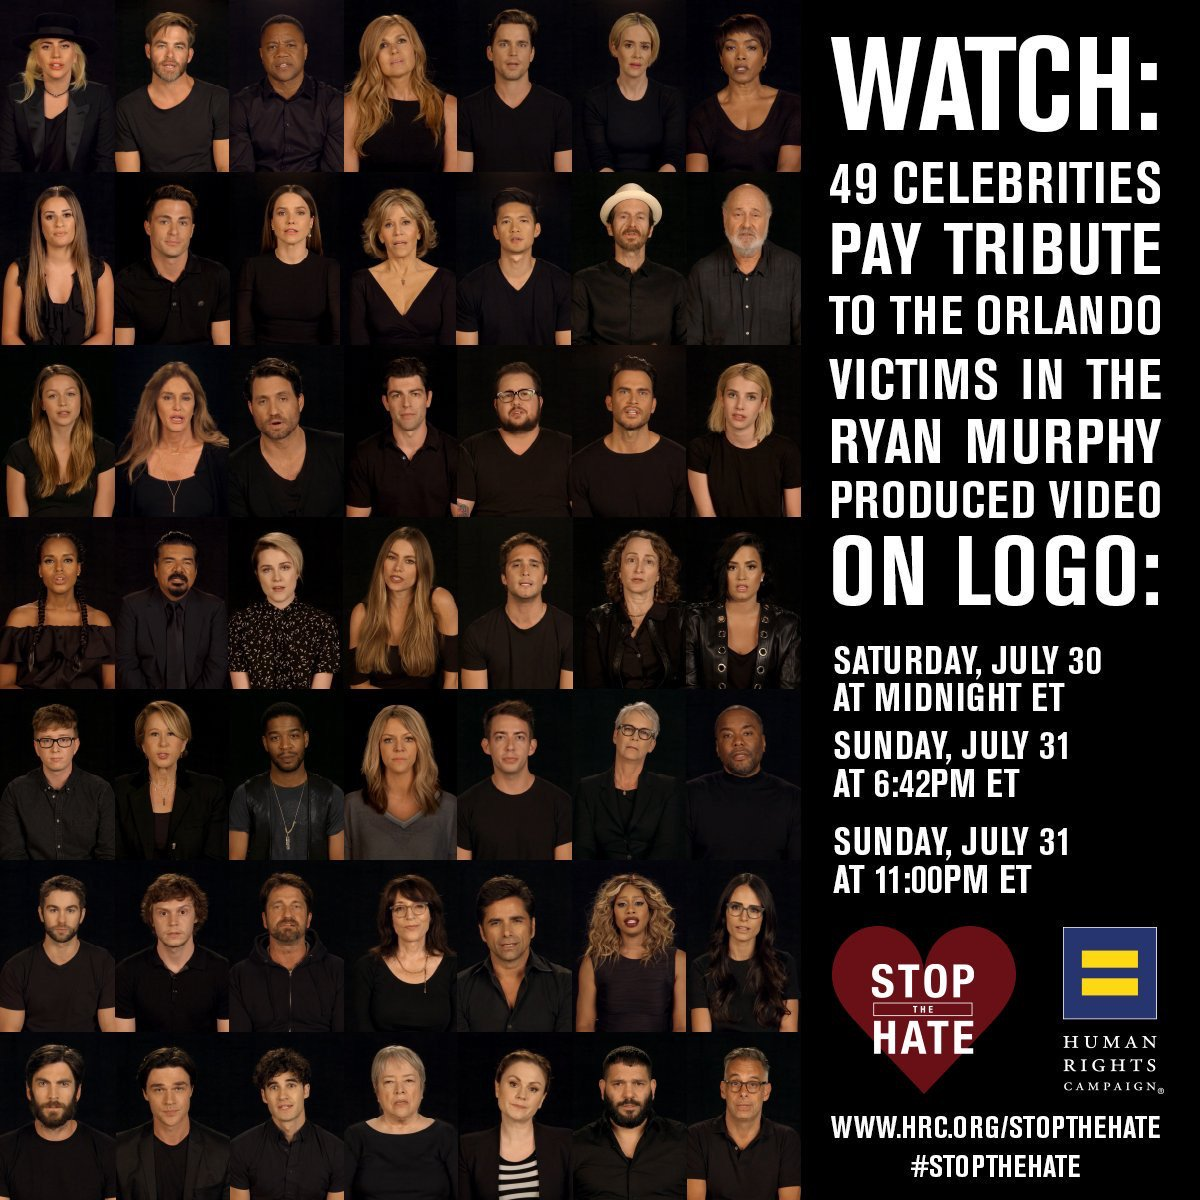 Sunday marks 49 days since the Orlando shooting. @LogoTV will honor the 49 victims by airing @HRC's #StopTheHate https://t.co/kpf4Q8eAYg